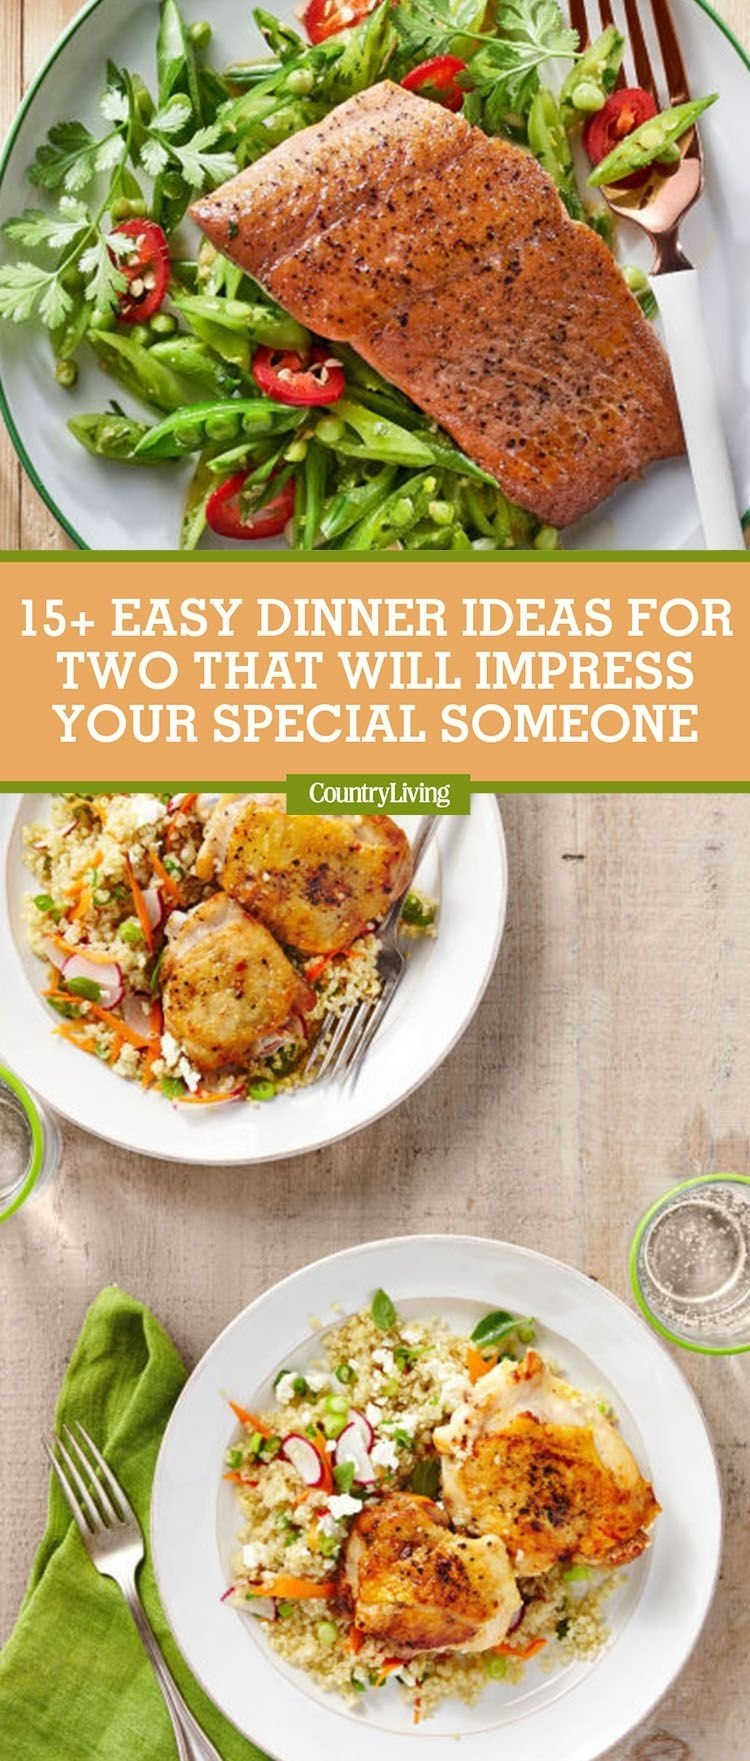 17 easy dinner ideas for two - romantic dinner for two recipes